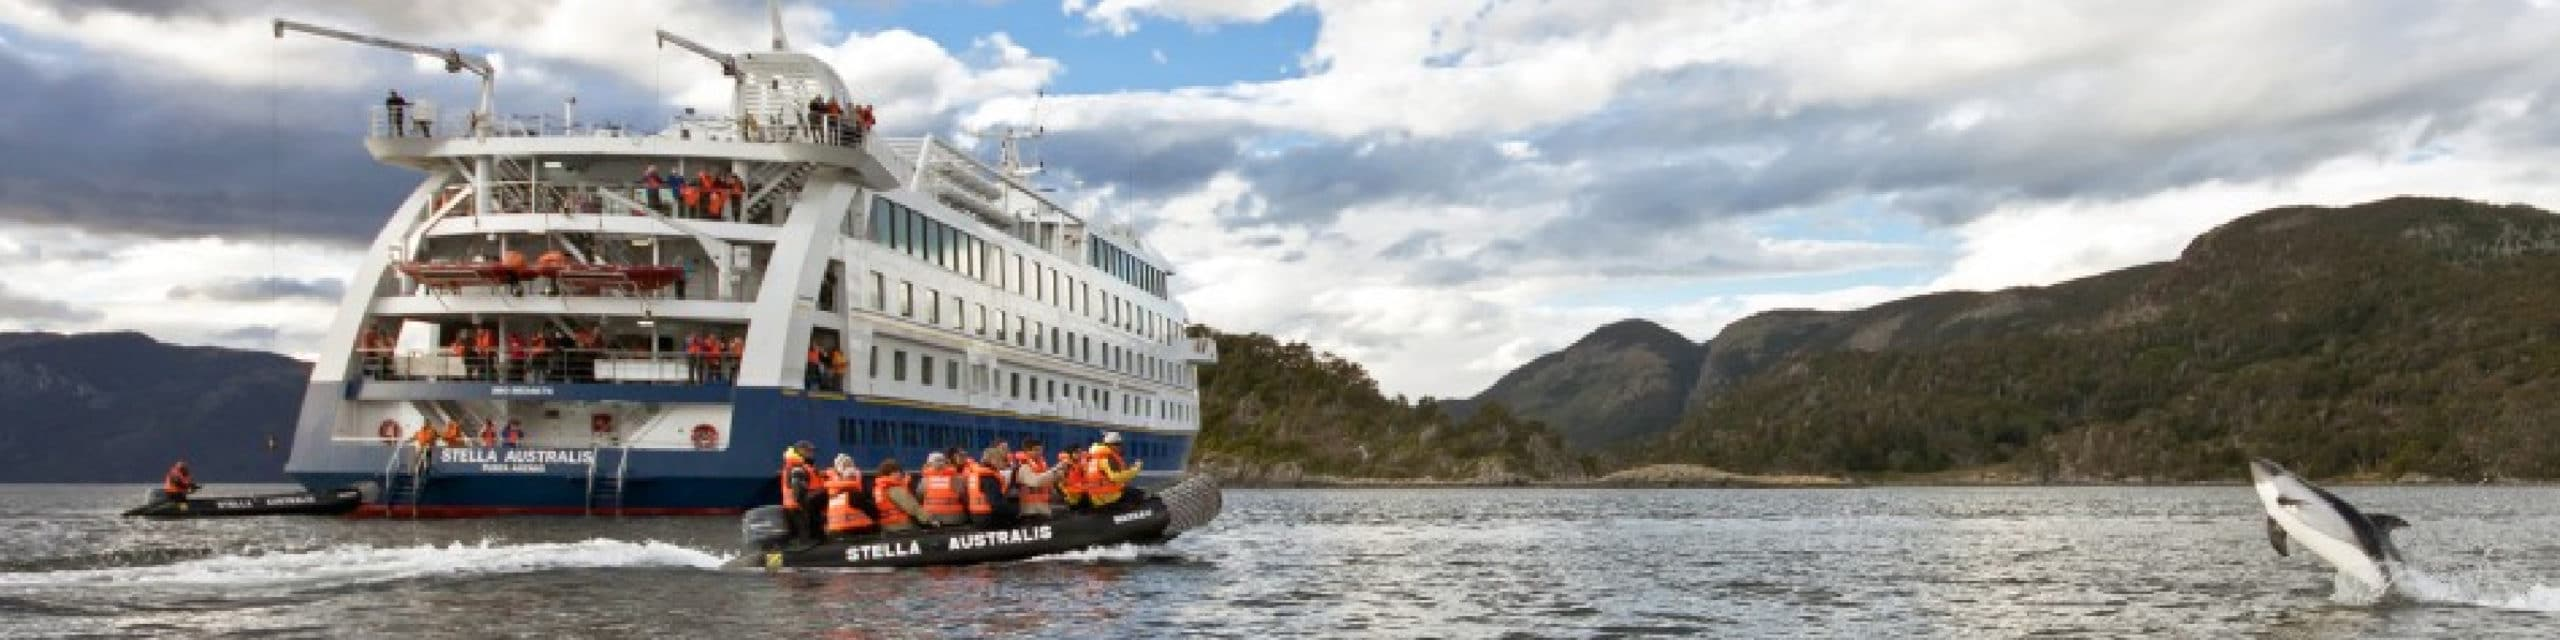 The cruise expedition with Australis Cruise in Patagonia. Visit Cape Horn and southern channels, fjords and glaciers in Argentina and Chile - Cruises in Patagonia by ripioturismo DMC for Argentina and Chile